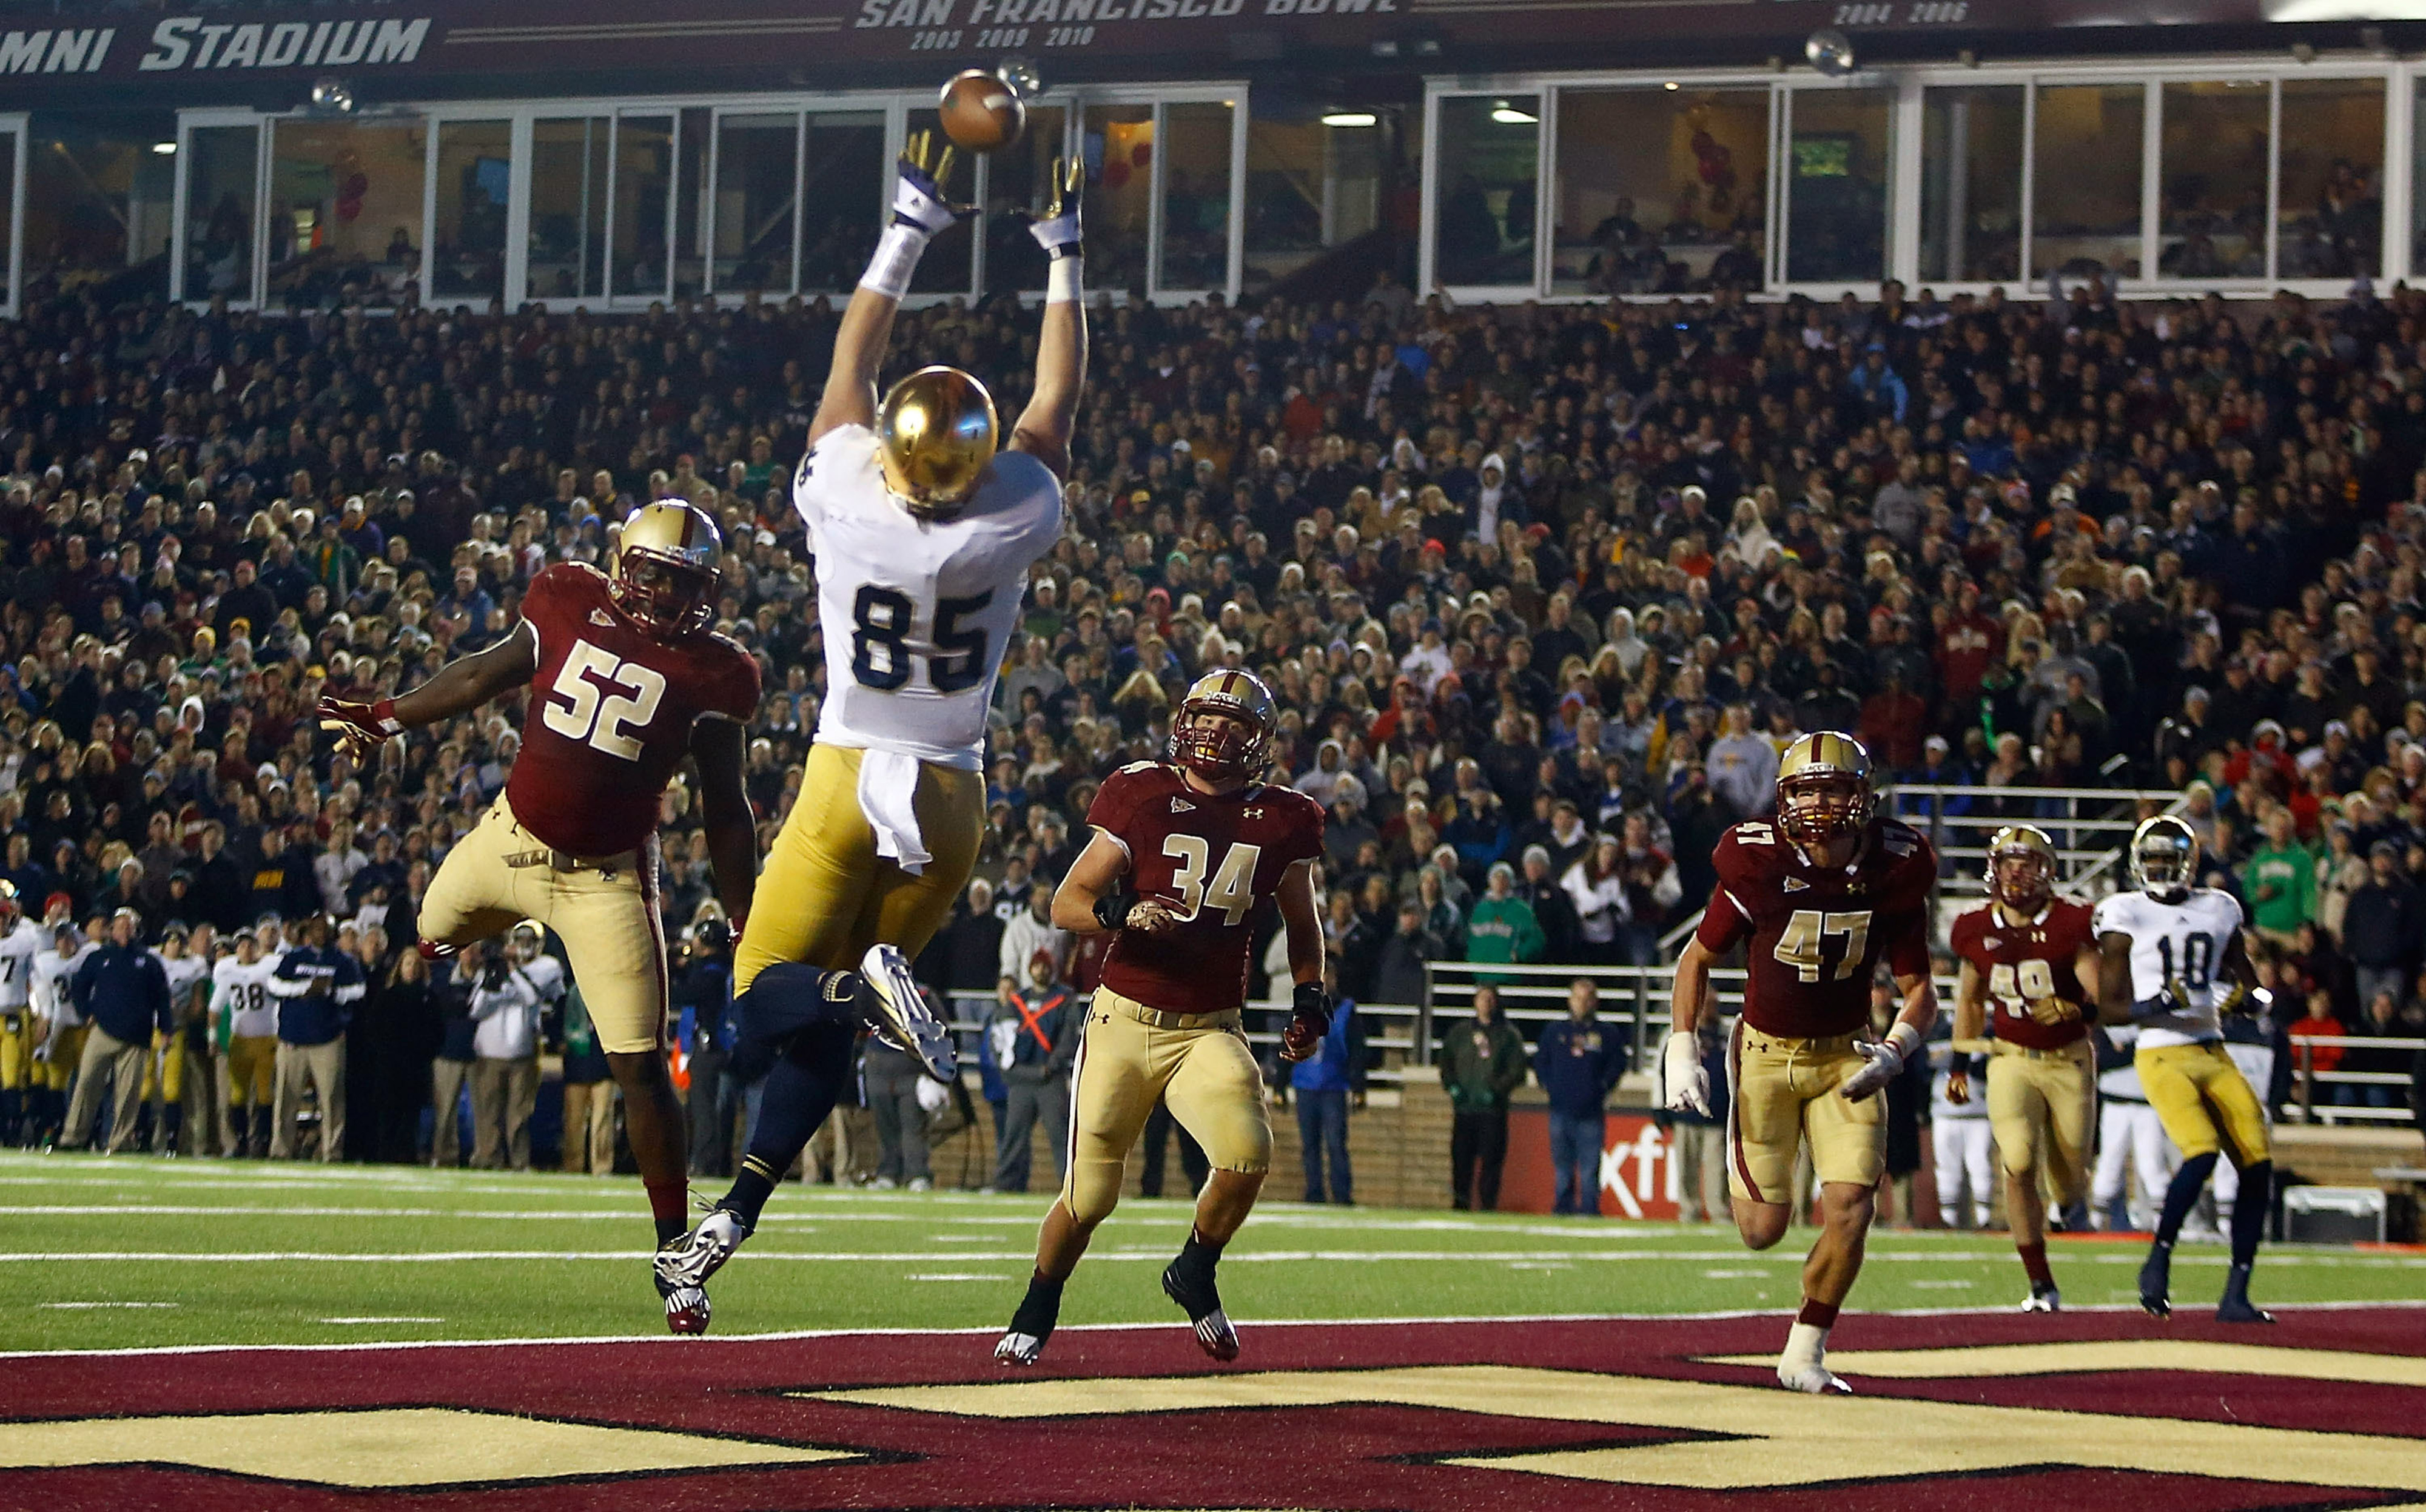 Cardinals selected big tight end Troy Niklas #52 overall